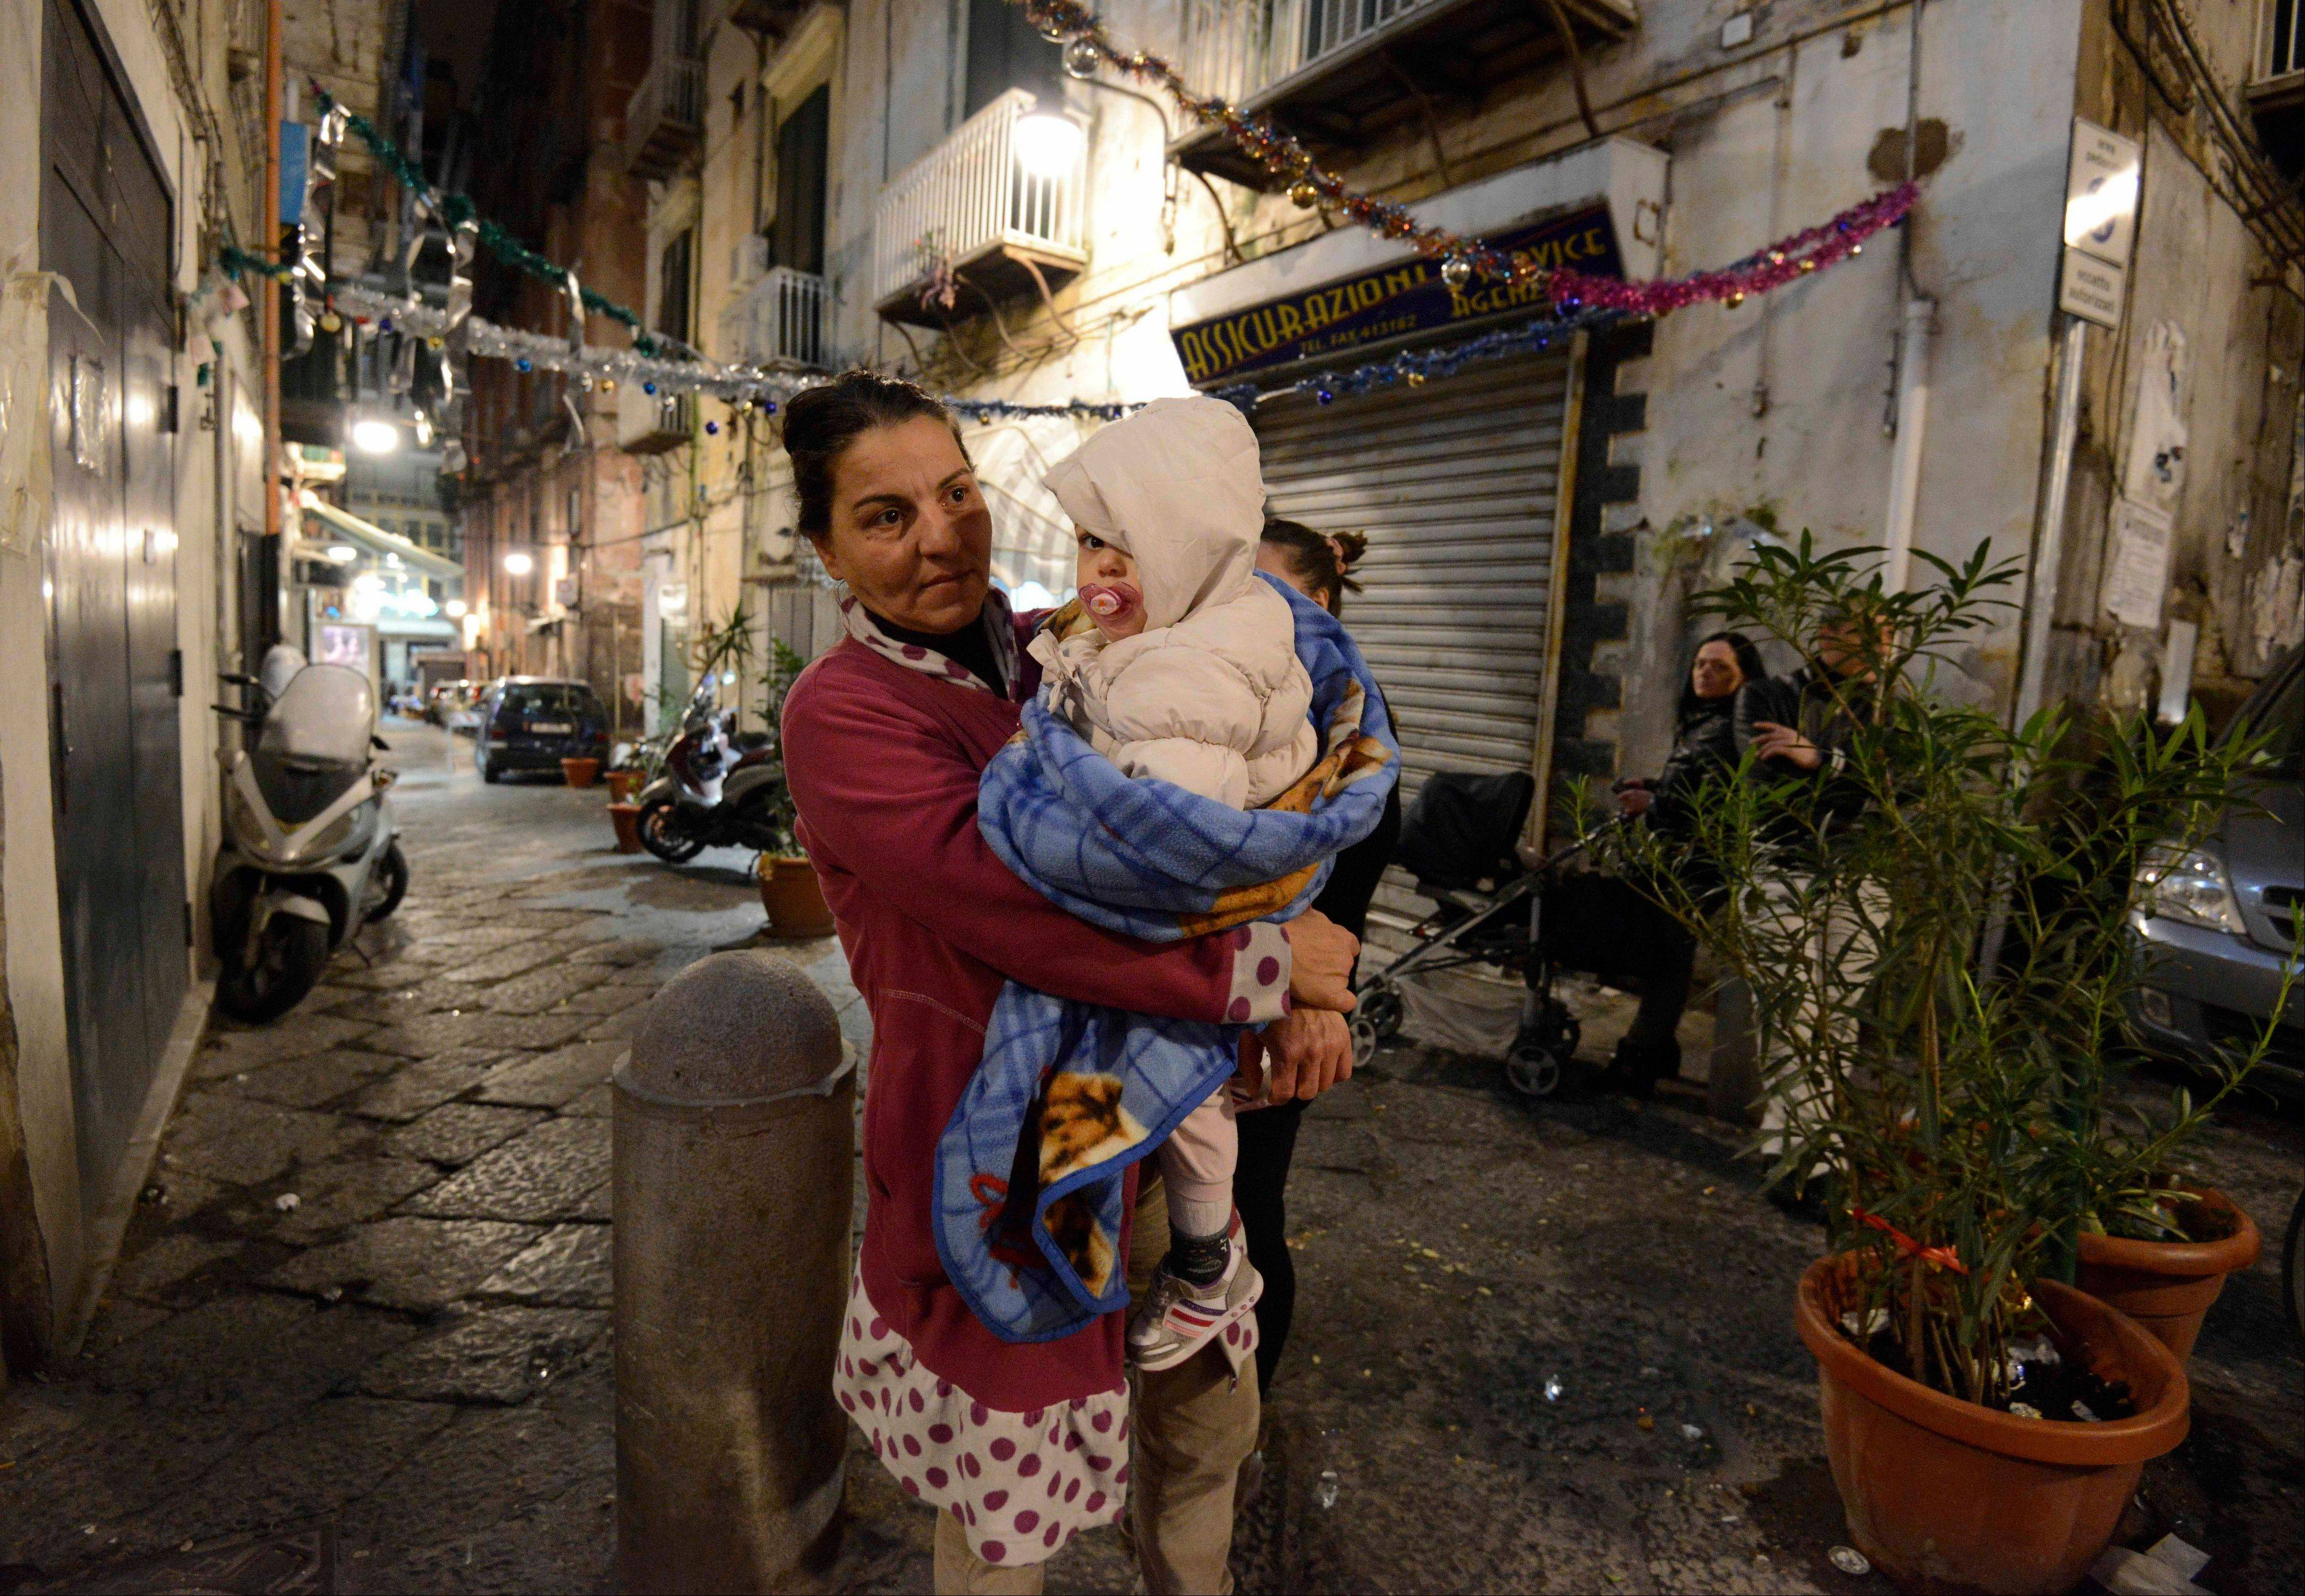 A woman holds a child wrapped in a blanket as she stands on a street in Naples, Italy, Sunday.